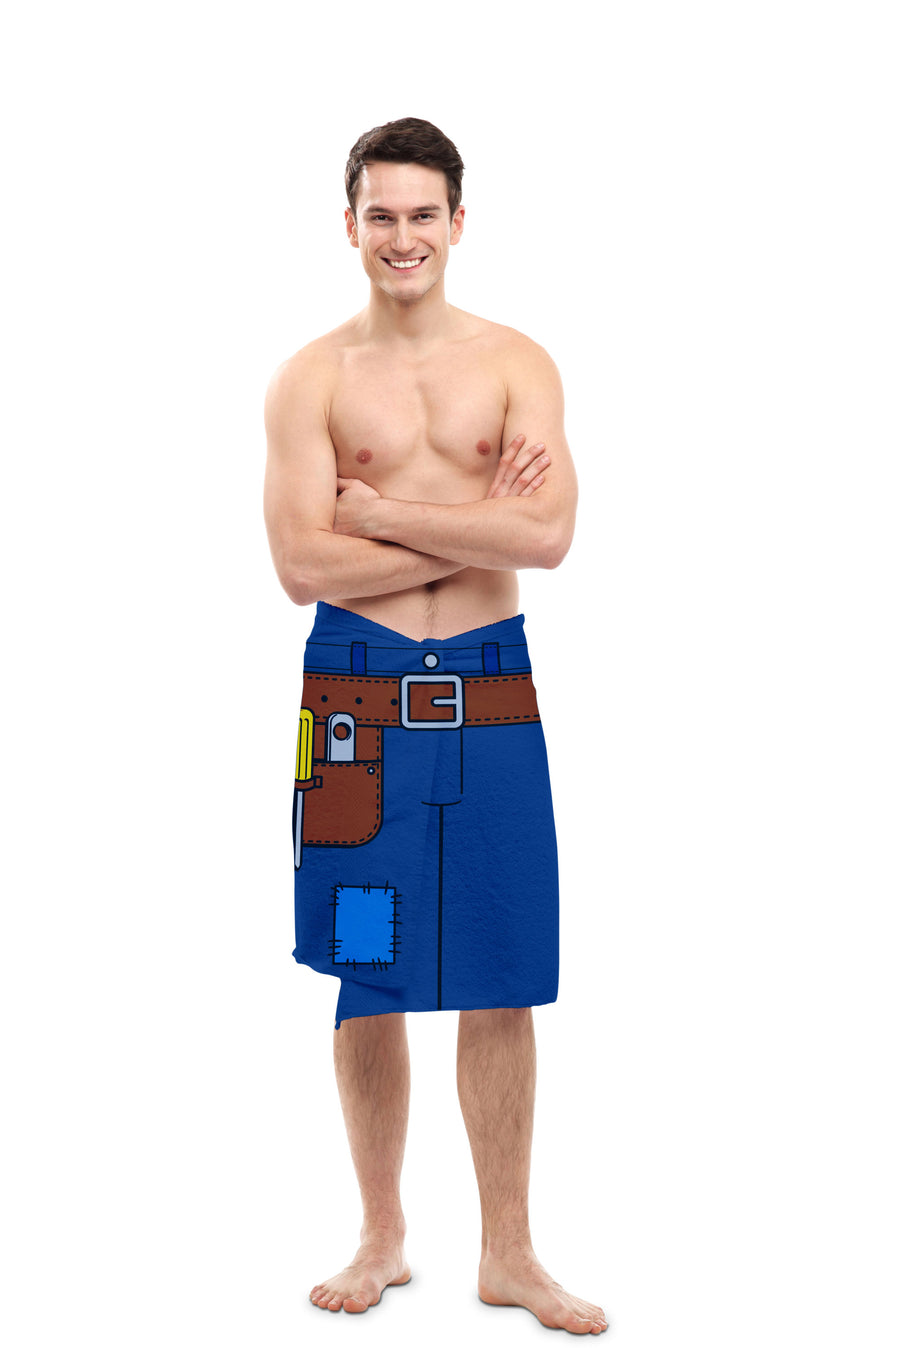 The Handyman Tool Belt Towel